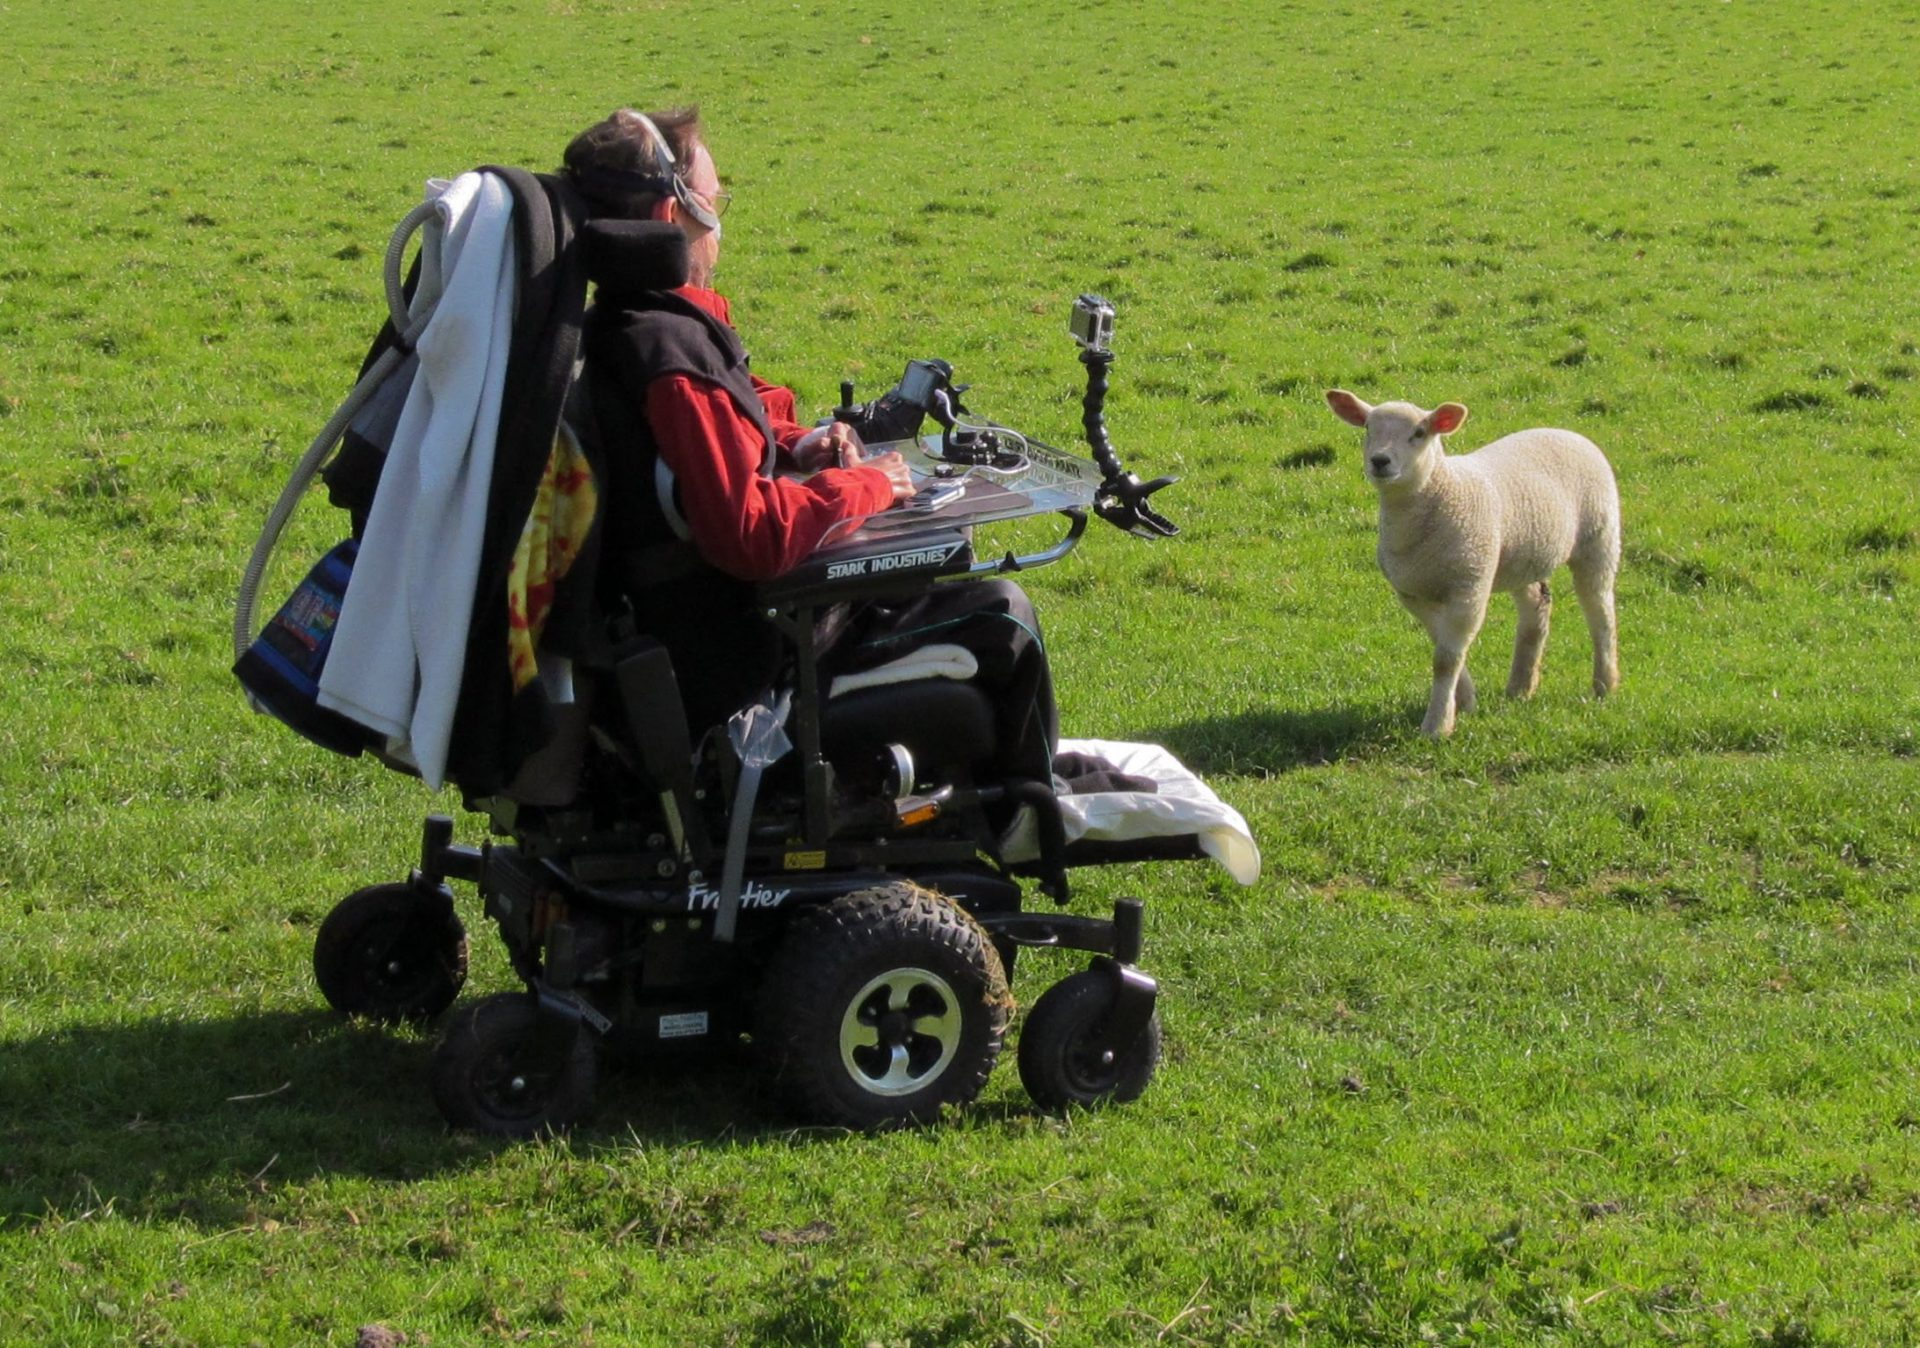 Daniel Baker in his wheelchair facing an interested lamb Looking Back to April 18th 2014 visit to Sudeley Castle